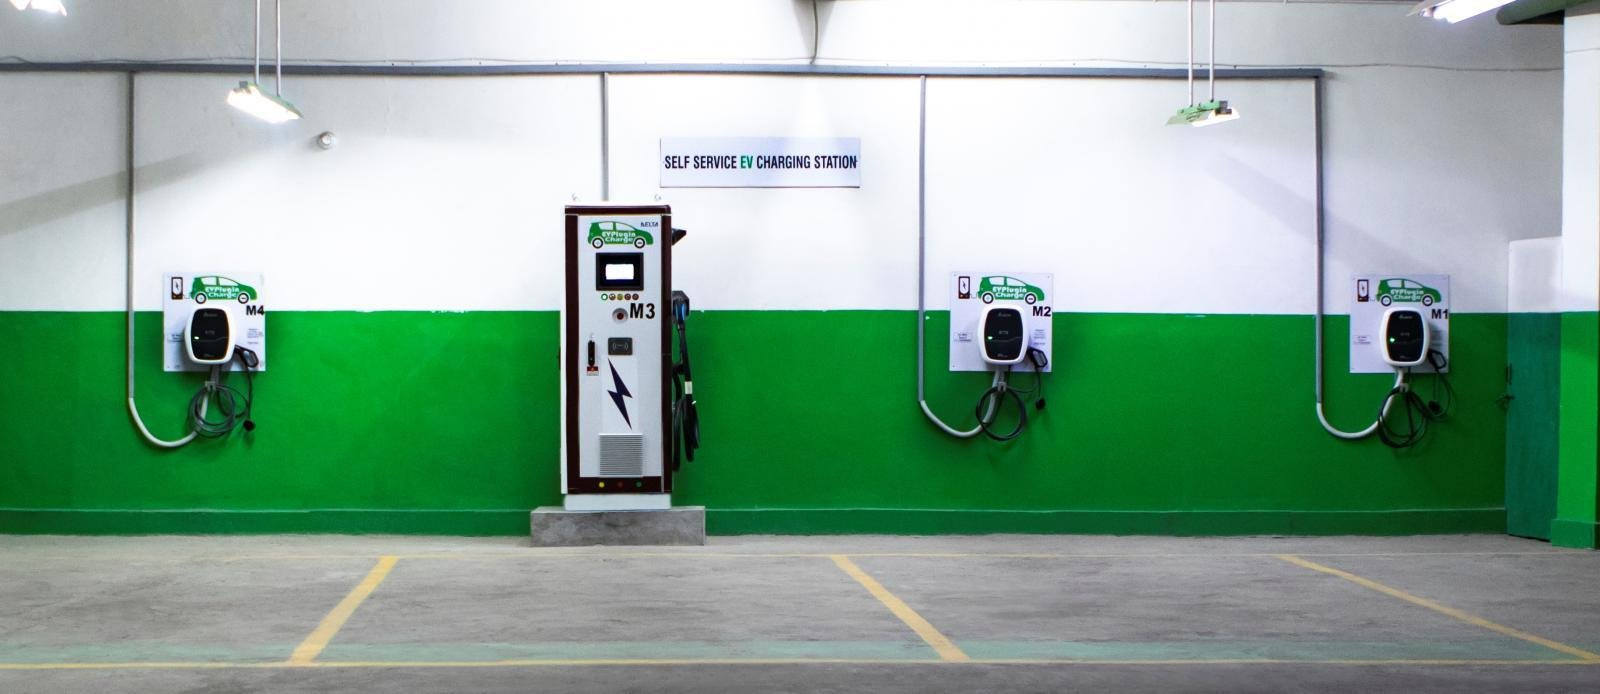 Delhi Government Directs Hotels And Malls To Reserve 5% Parking For EVs